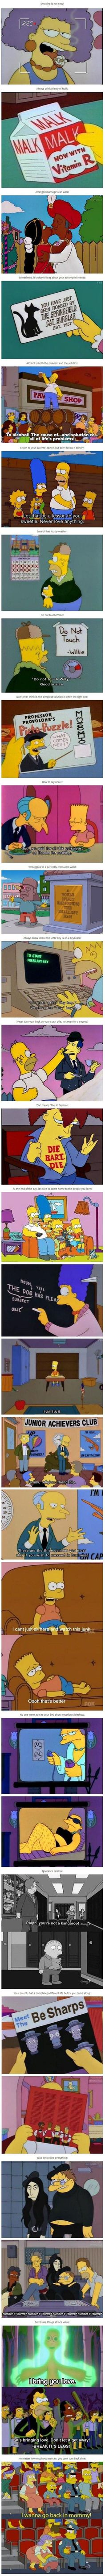 Things the Simpsons taught me